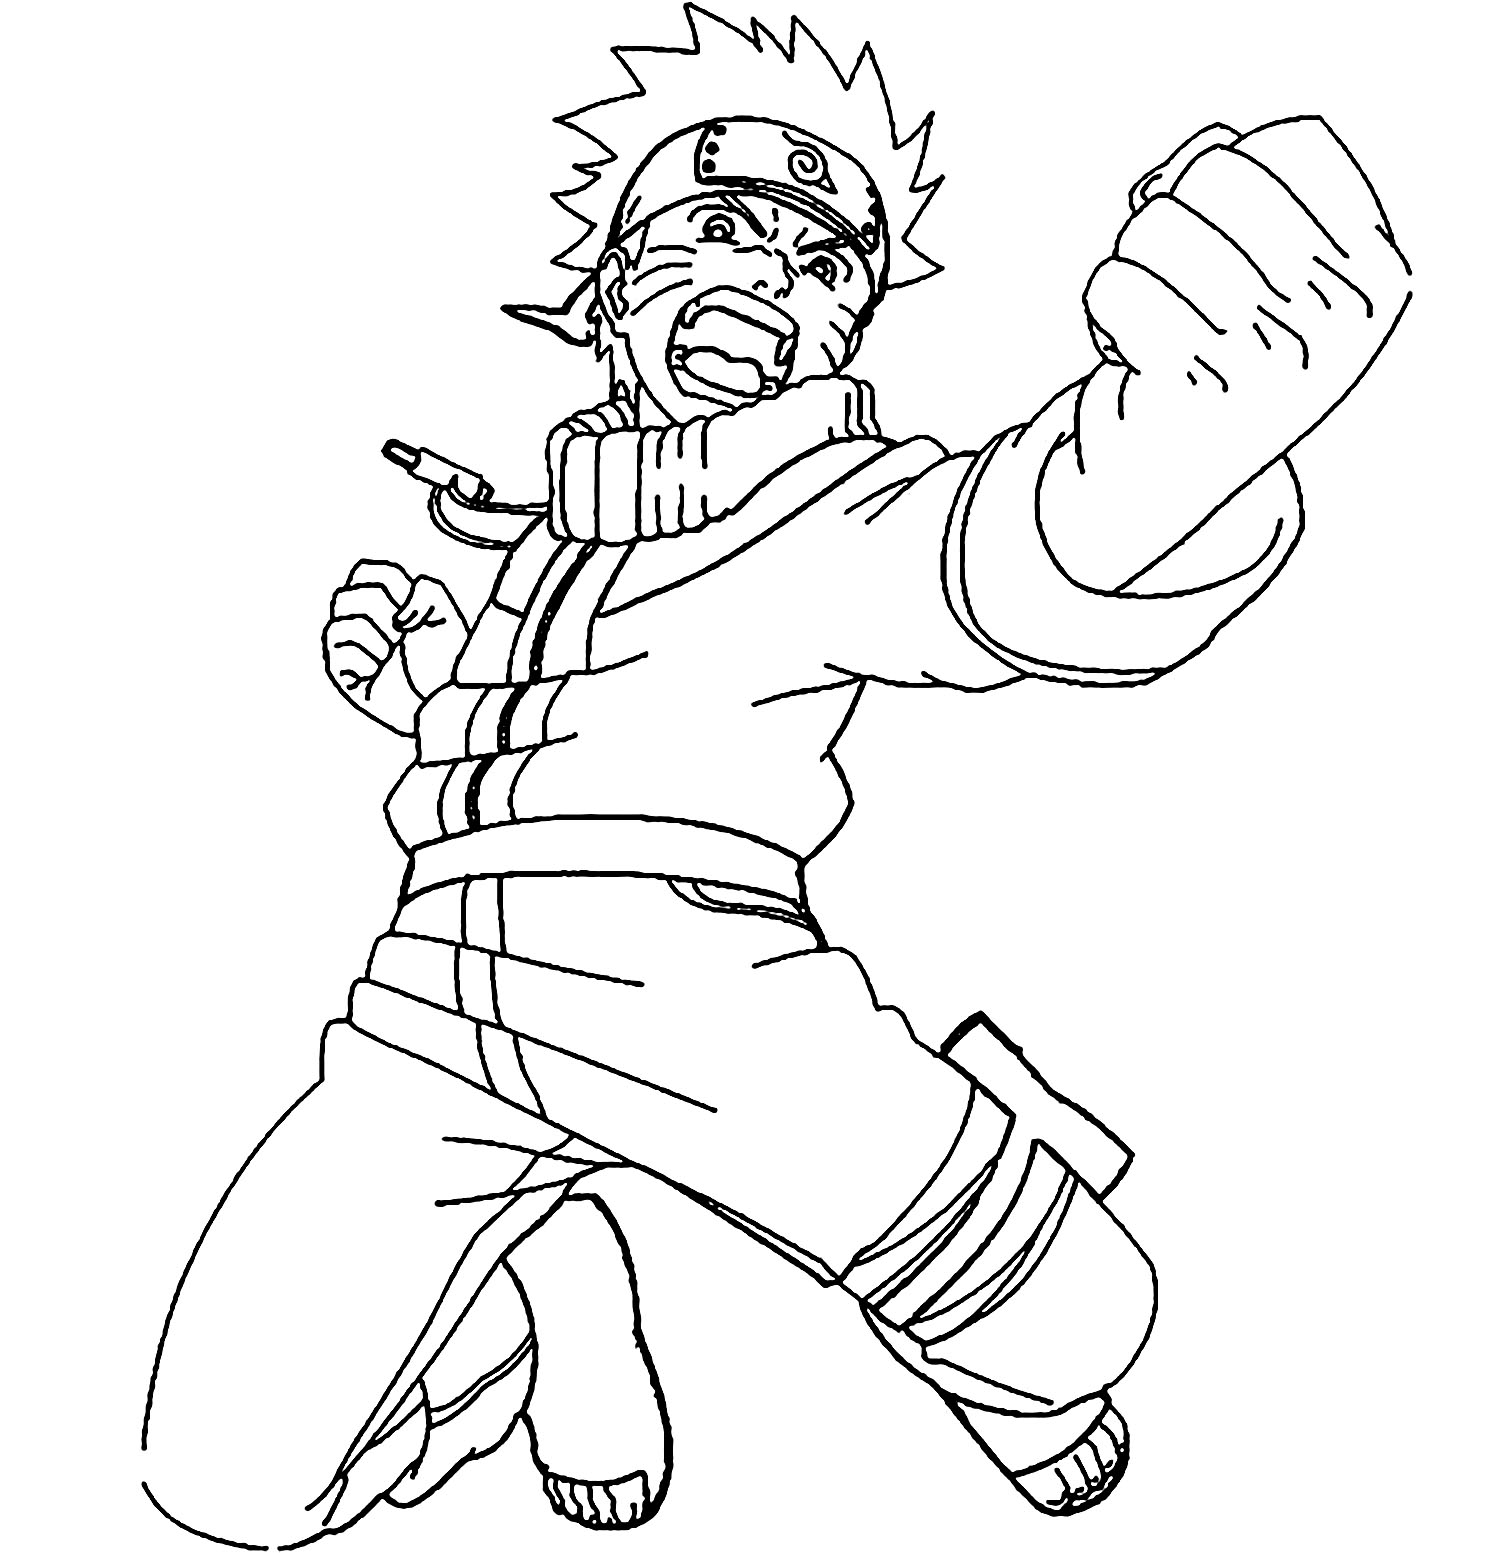 Funny Naruto coloring page for children